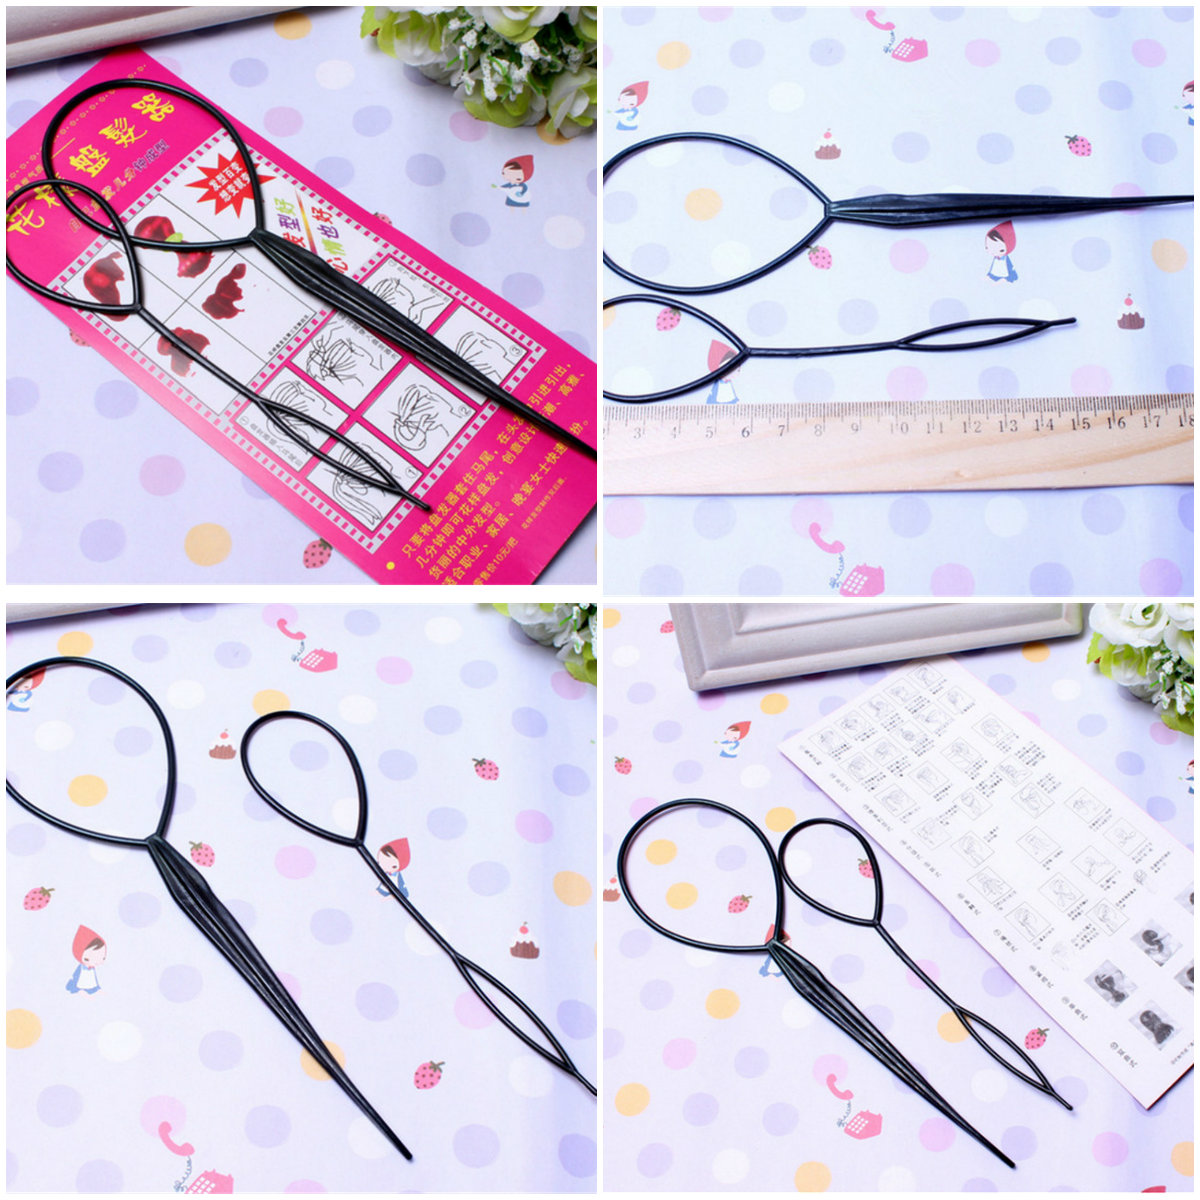 2Pcs Plastic Loop Styling ToolsBlack Ponytail Creator Tail Clip Hair Braid Maker Styling Tool Fashion Salon